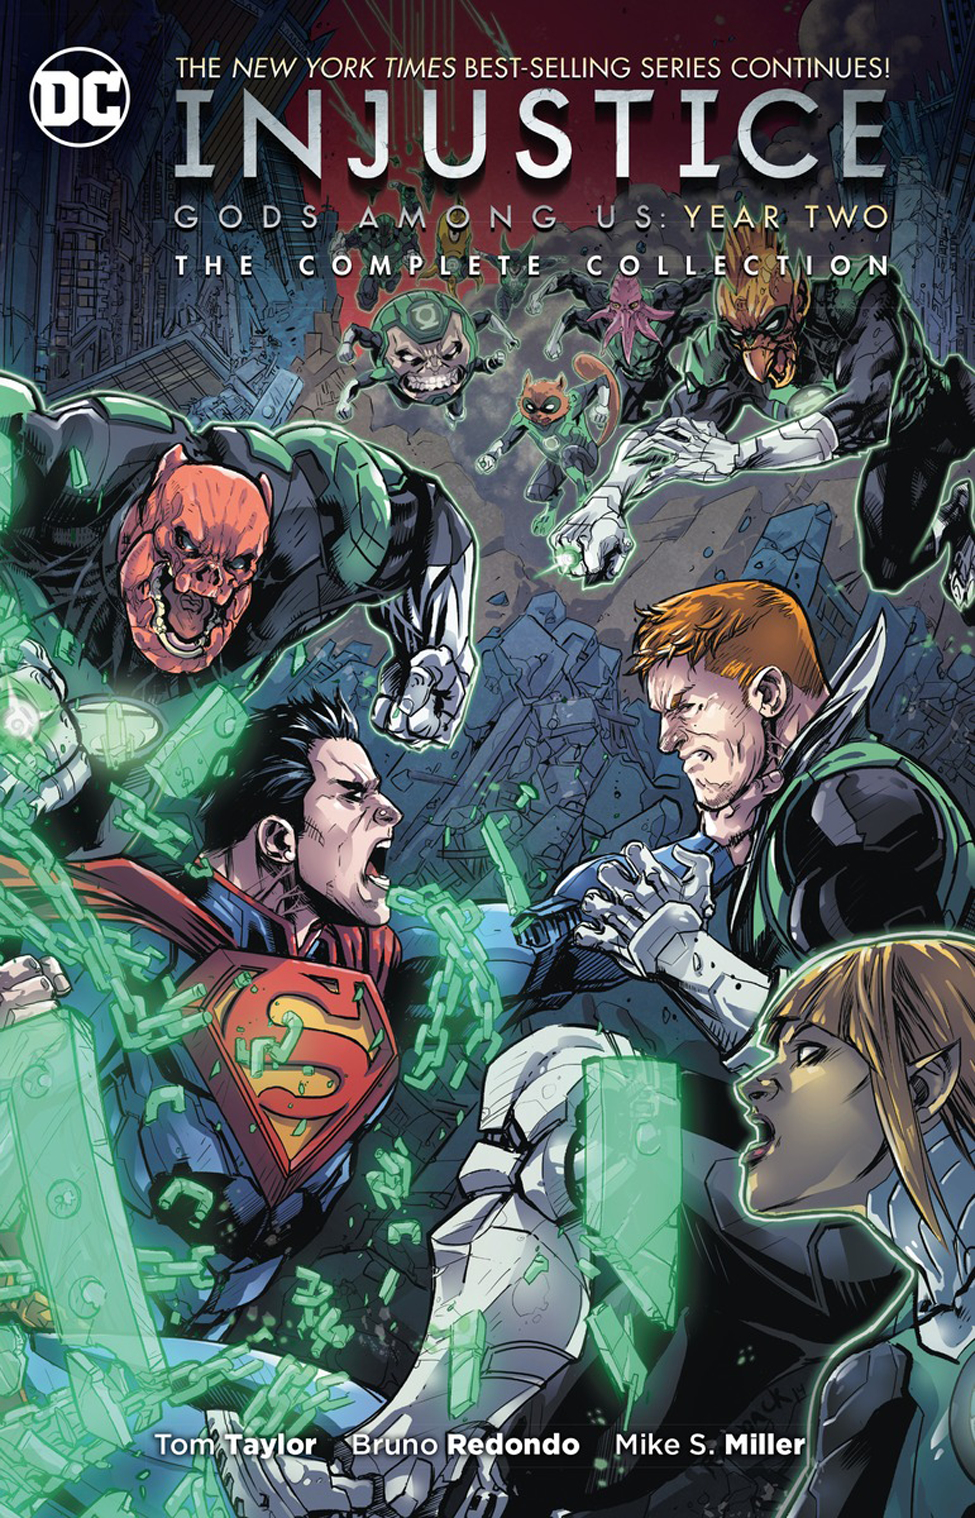 INJUSTICE GODS AMONG US YEAR TWO COMPLETE COLLECTION TP